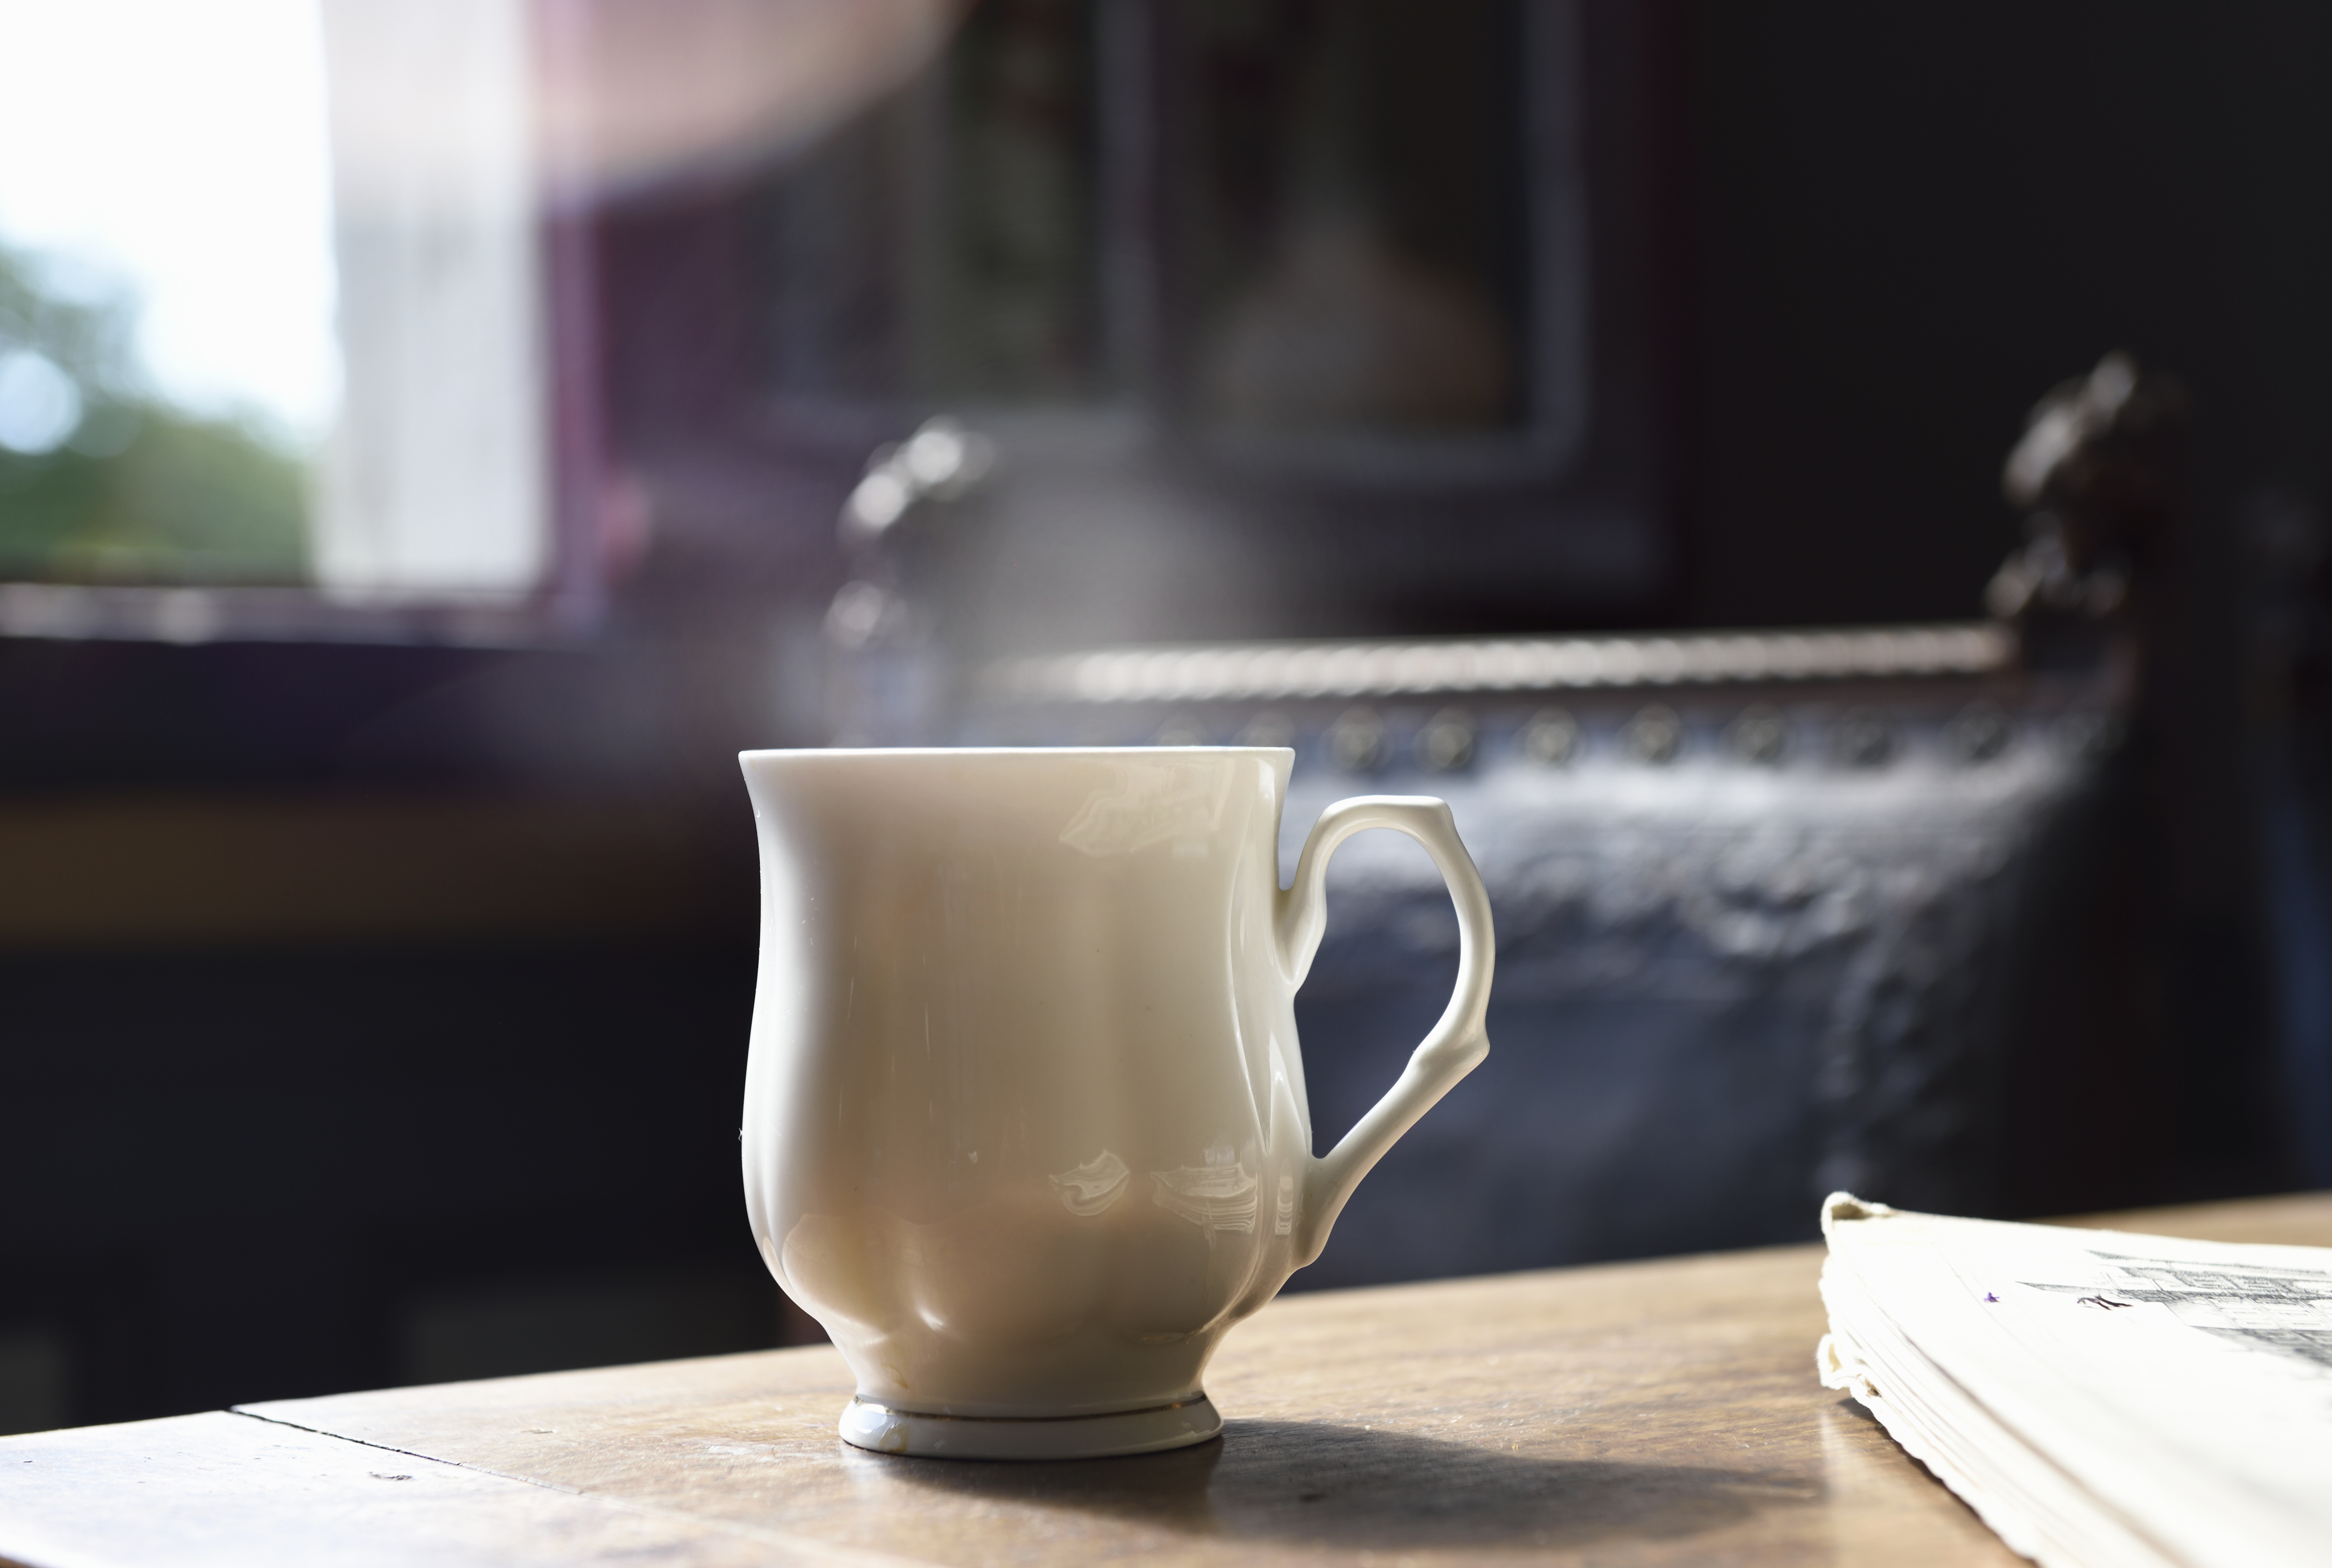 cup of tea on table with steam